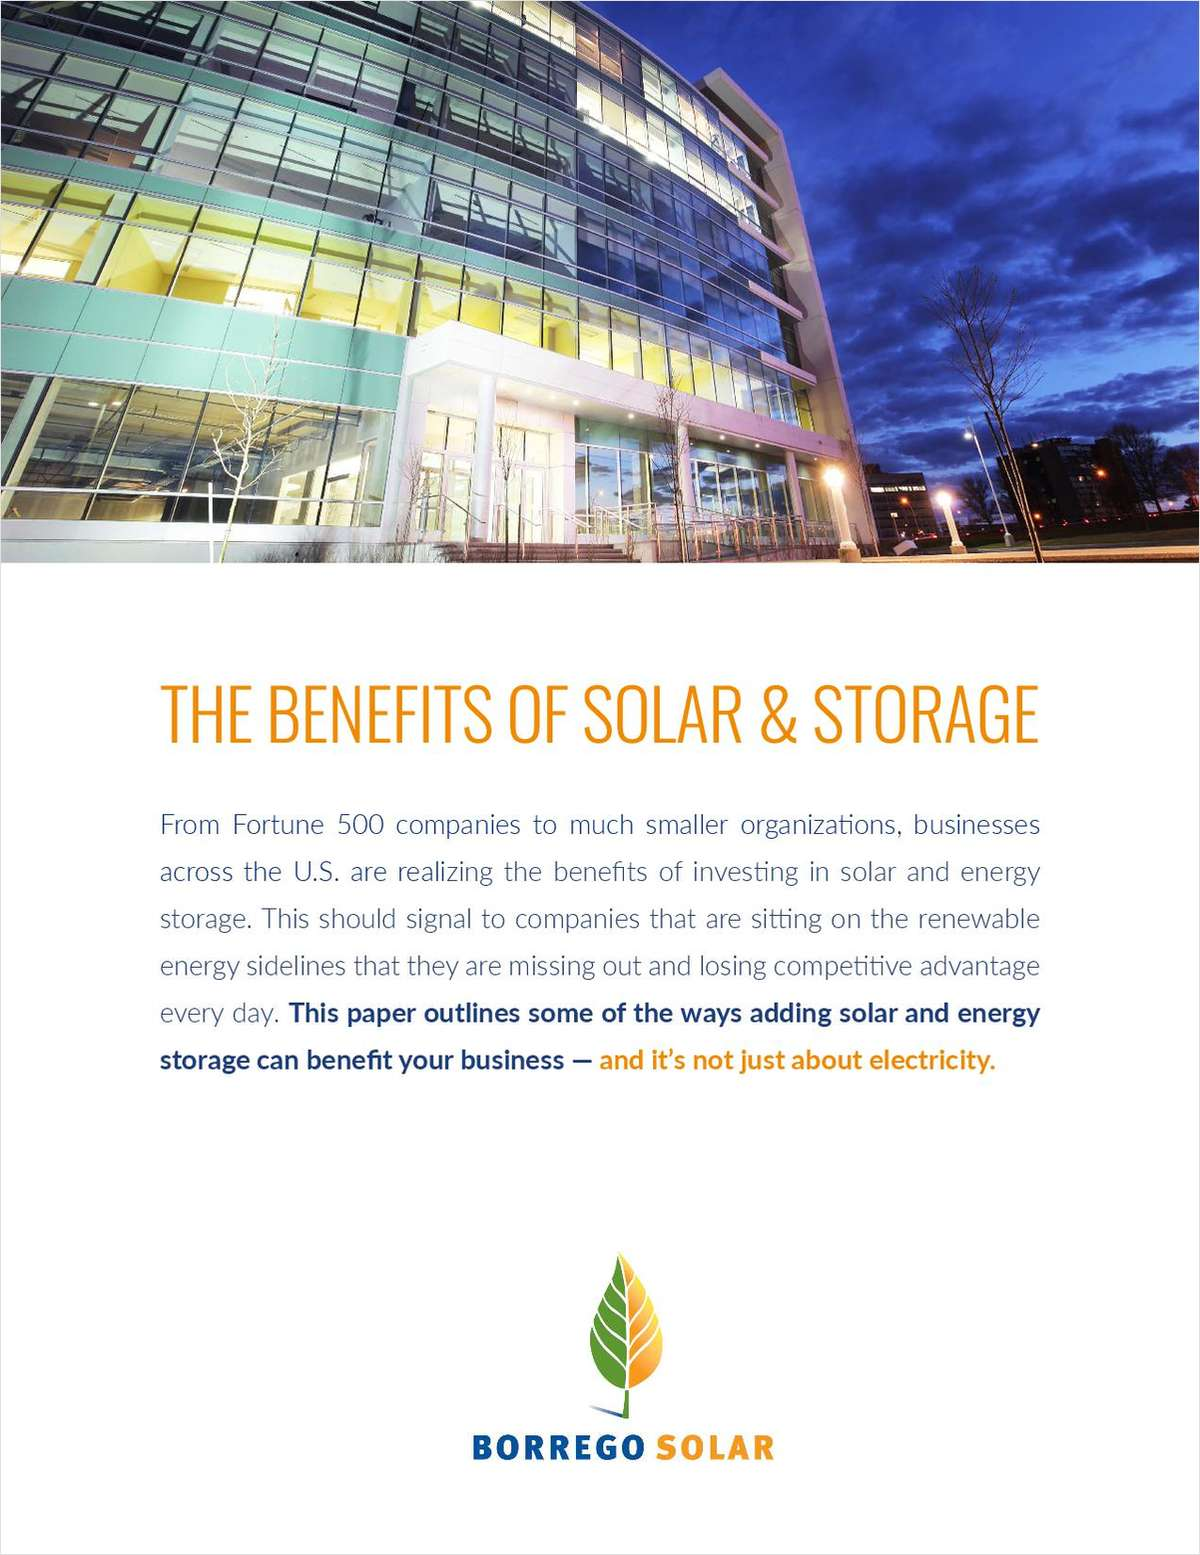 The Benefits of Solar & Energy Storage?